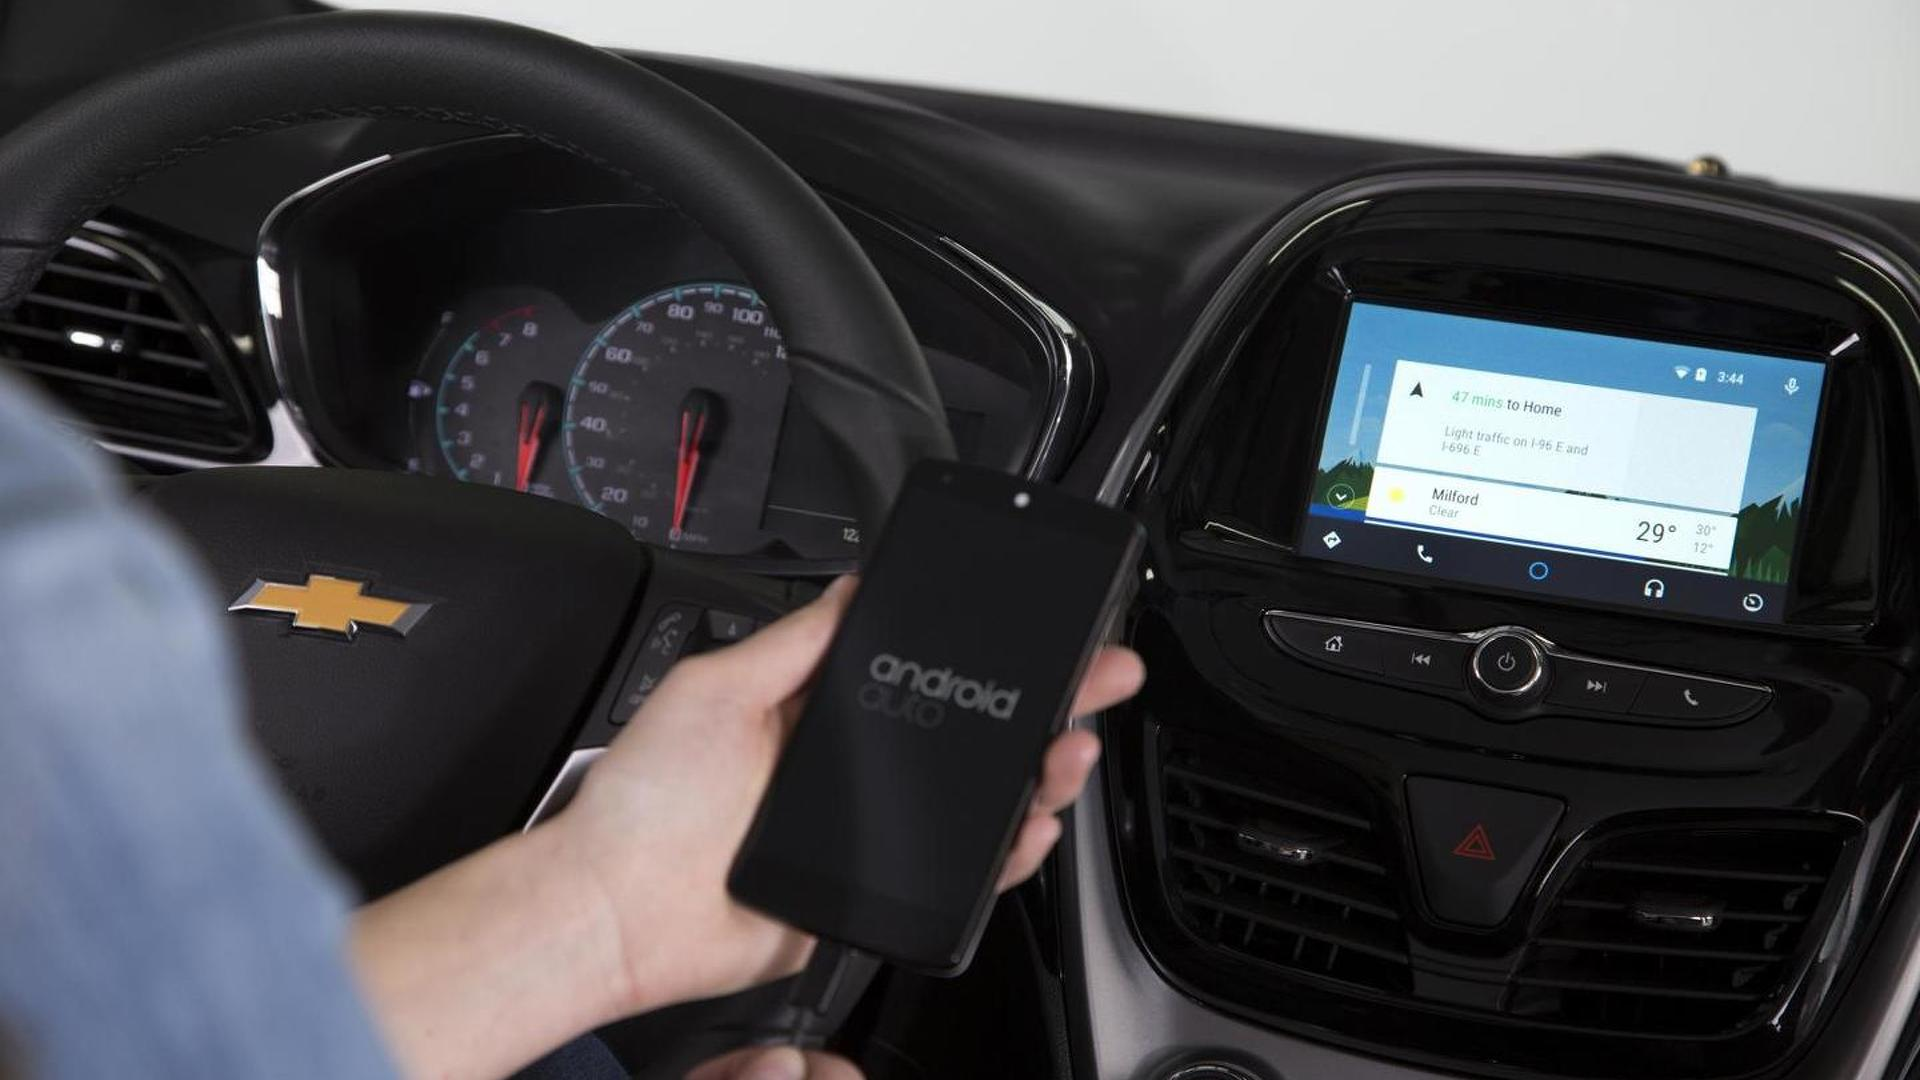 Chevrolet Android Auto update announced, will be available in March